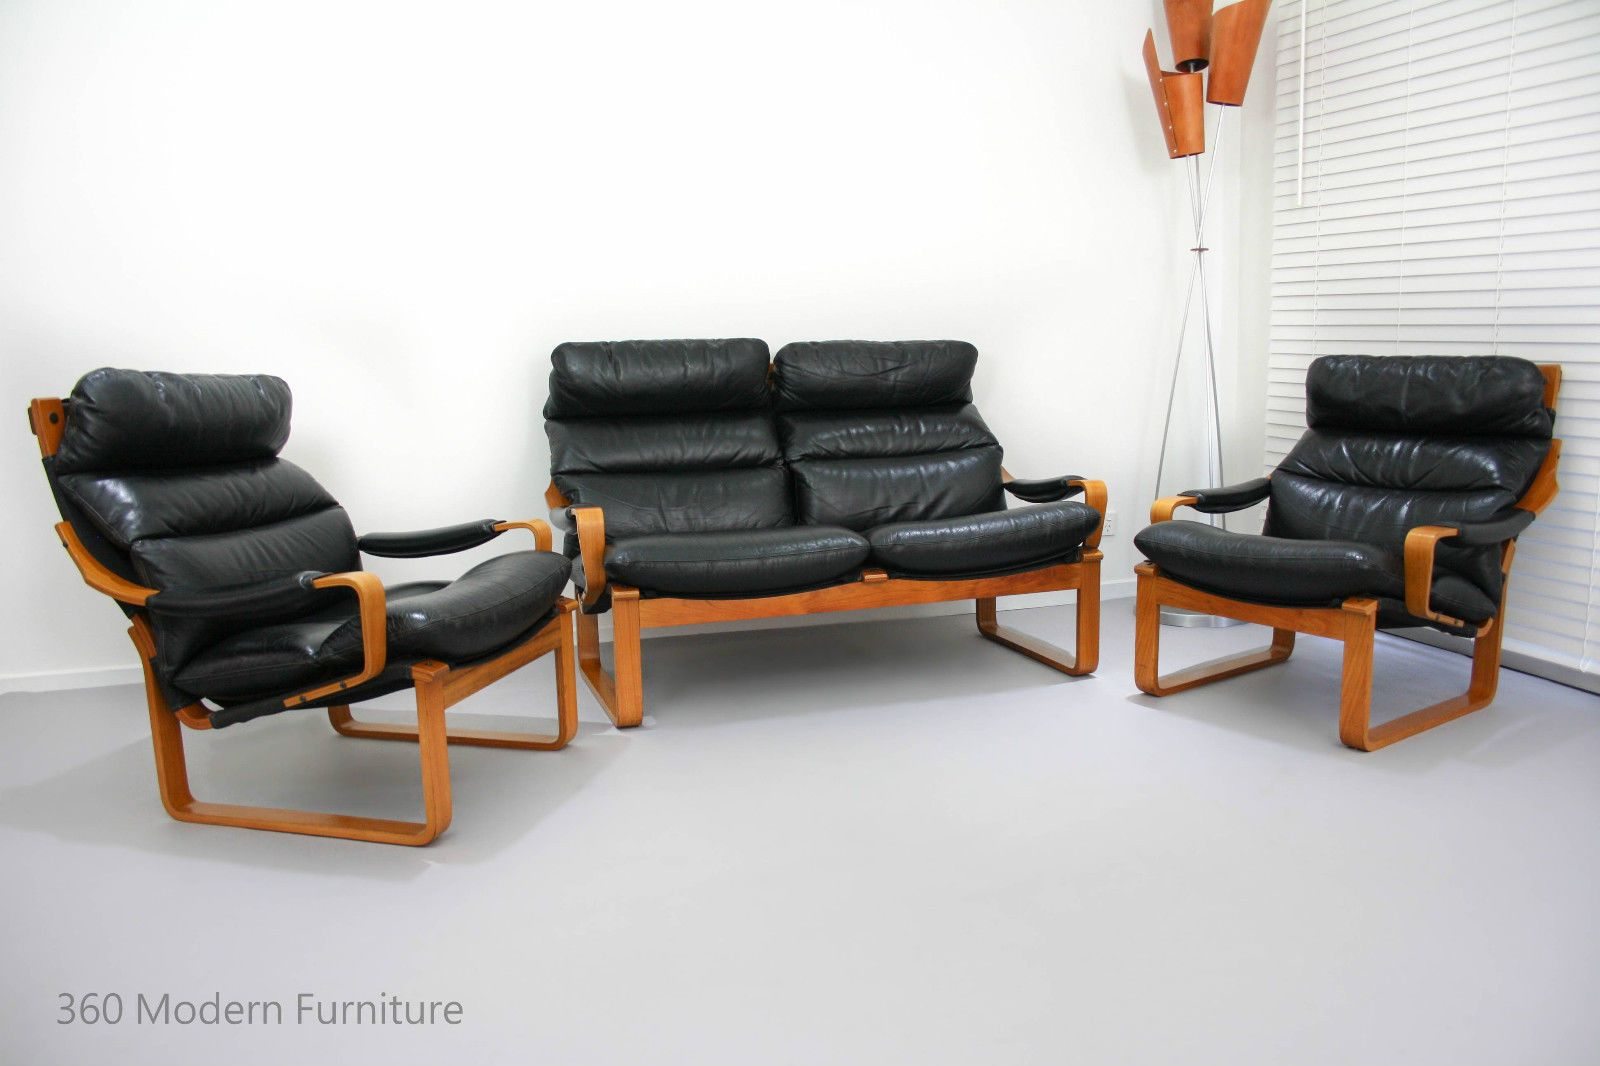 Tessa t8 leather 2 seater 2 armchairs retro vintage lounge suite sofa 3 piece